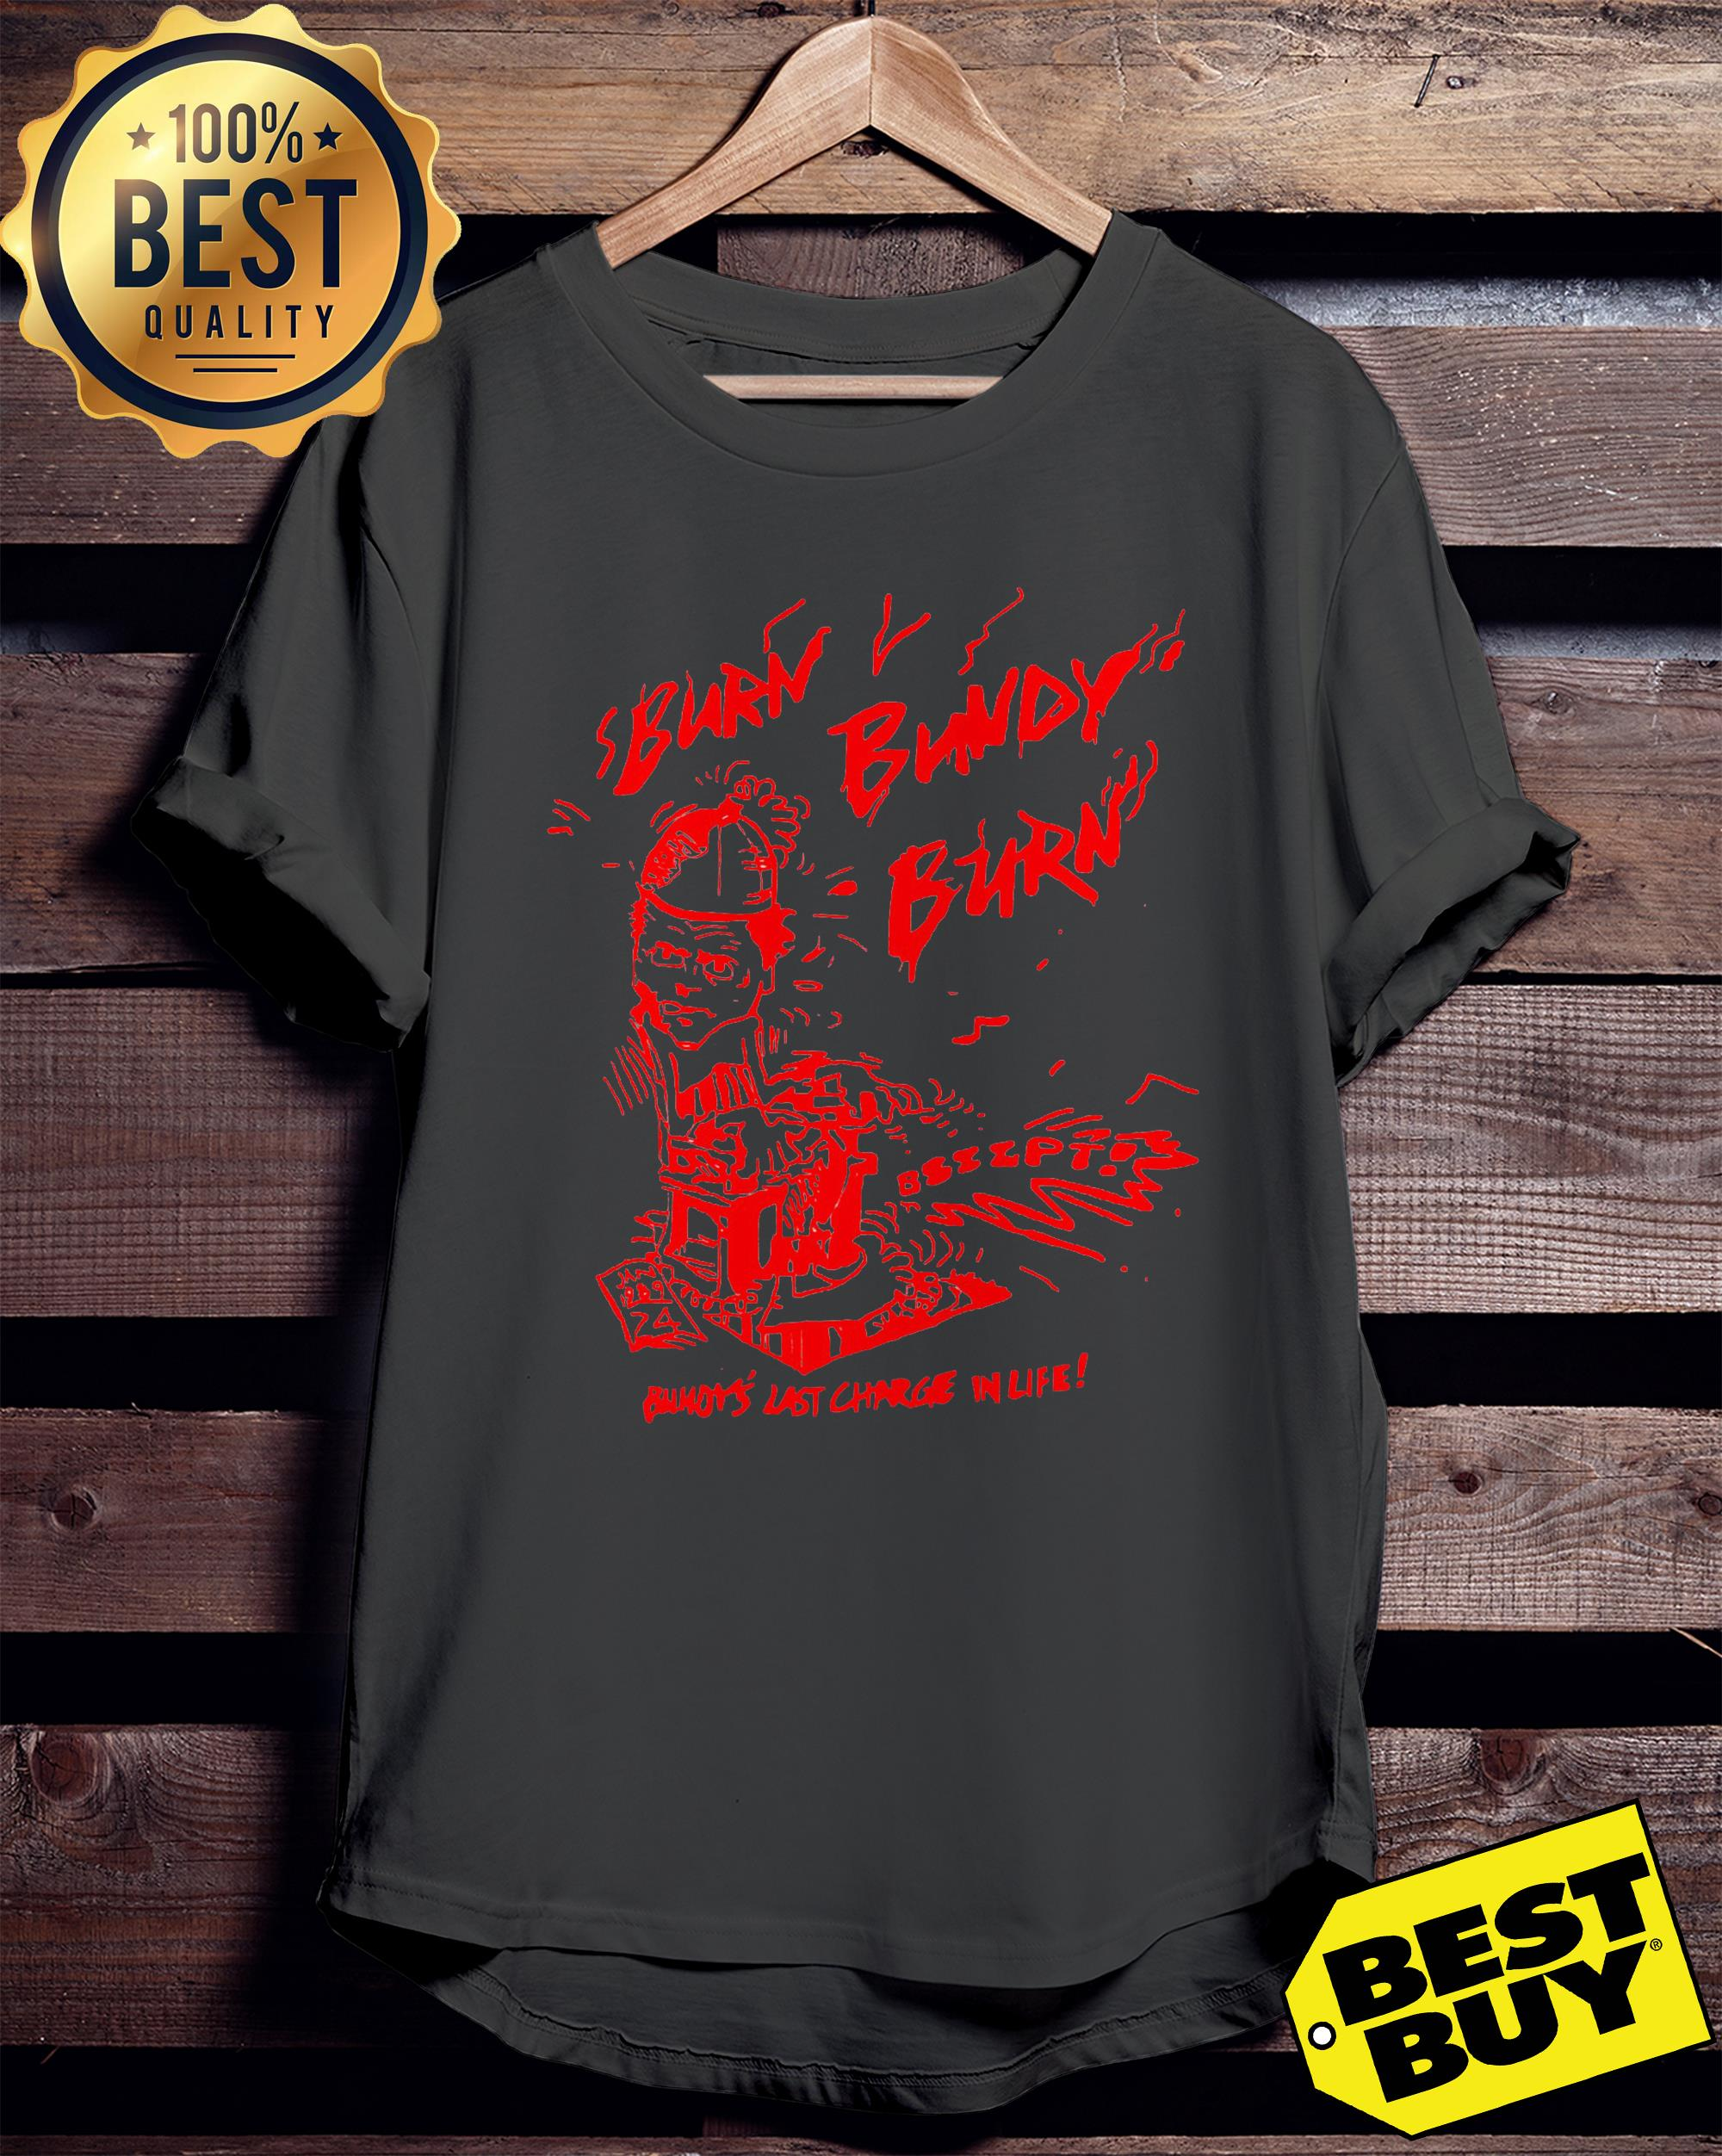 Burn Bundy Burn Buford last charge in life ladies tee